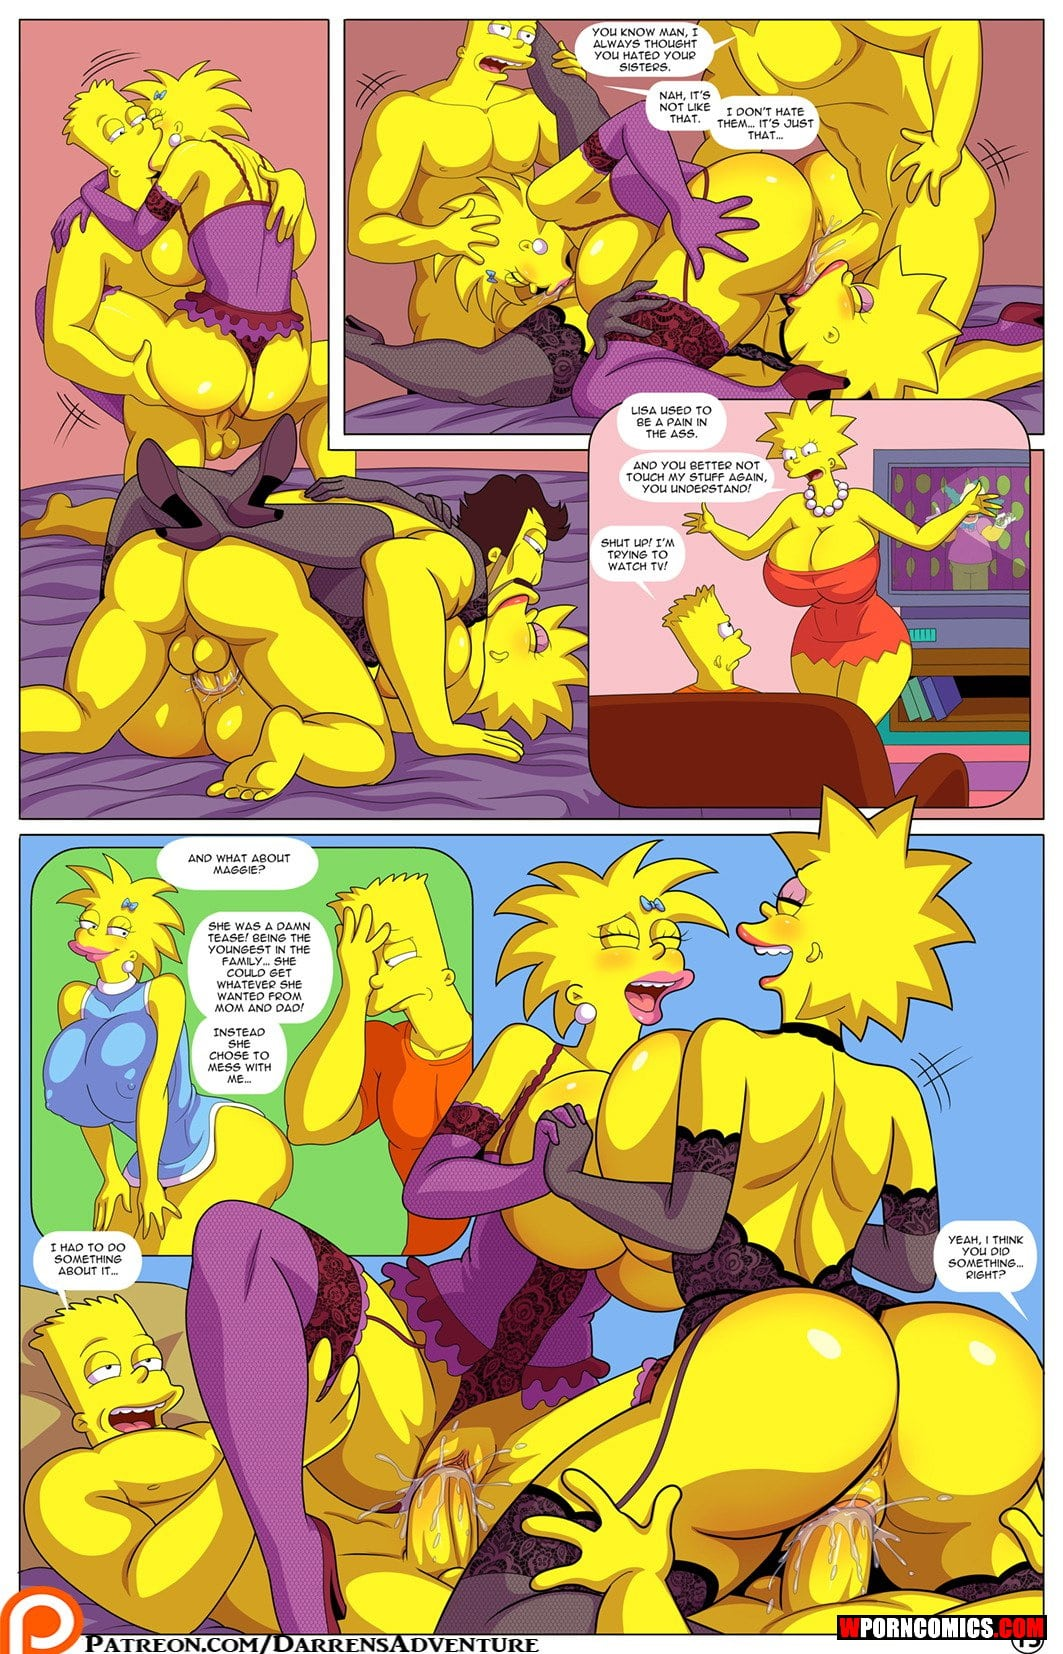 porn-comic-darrens-adventure-part-5-simpsons-2020-03-23/porn-comic-darrens-adventure-part-5-simpsons-2020-03-23-40368.jpg